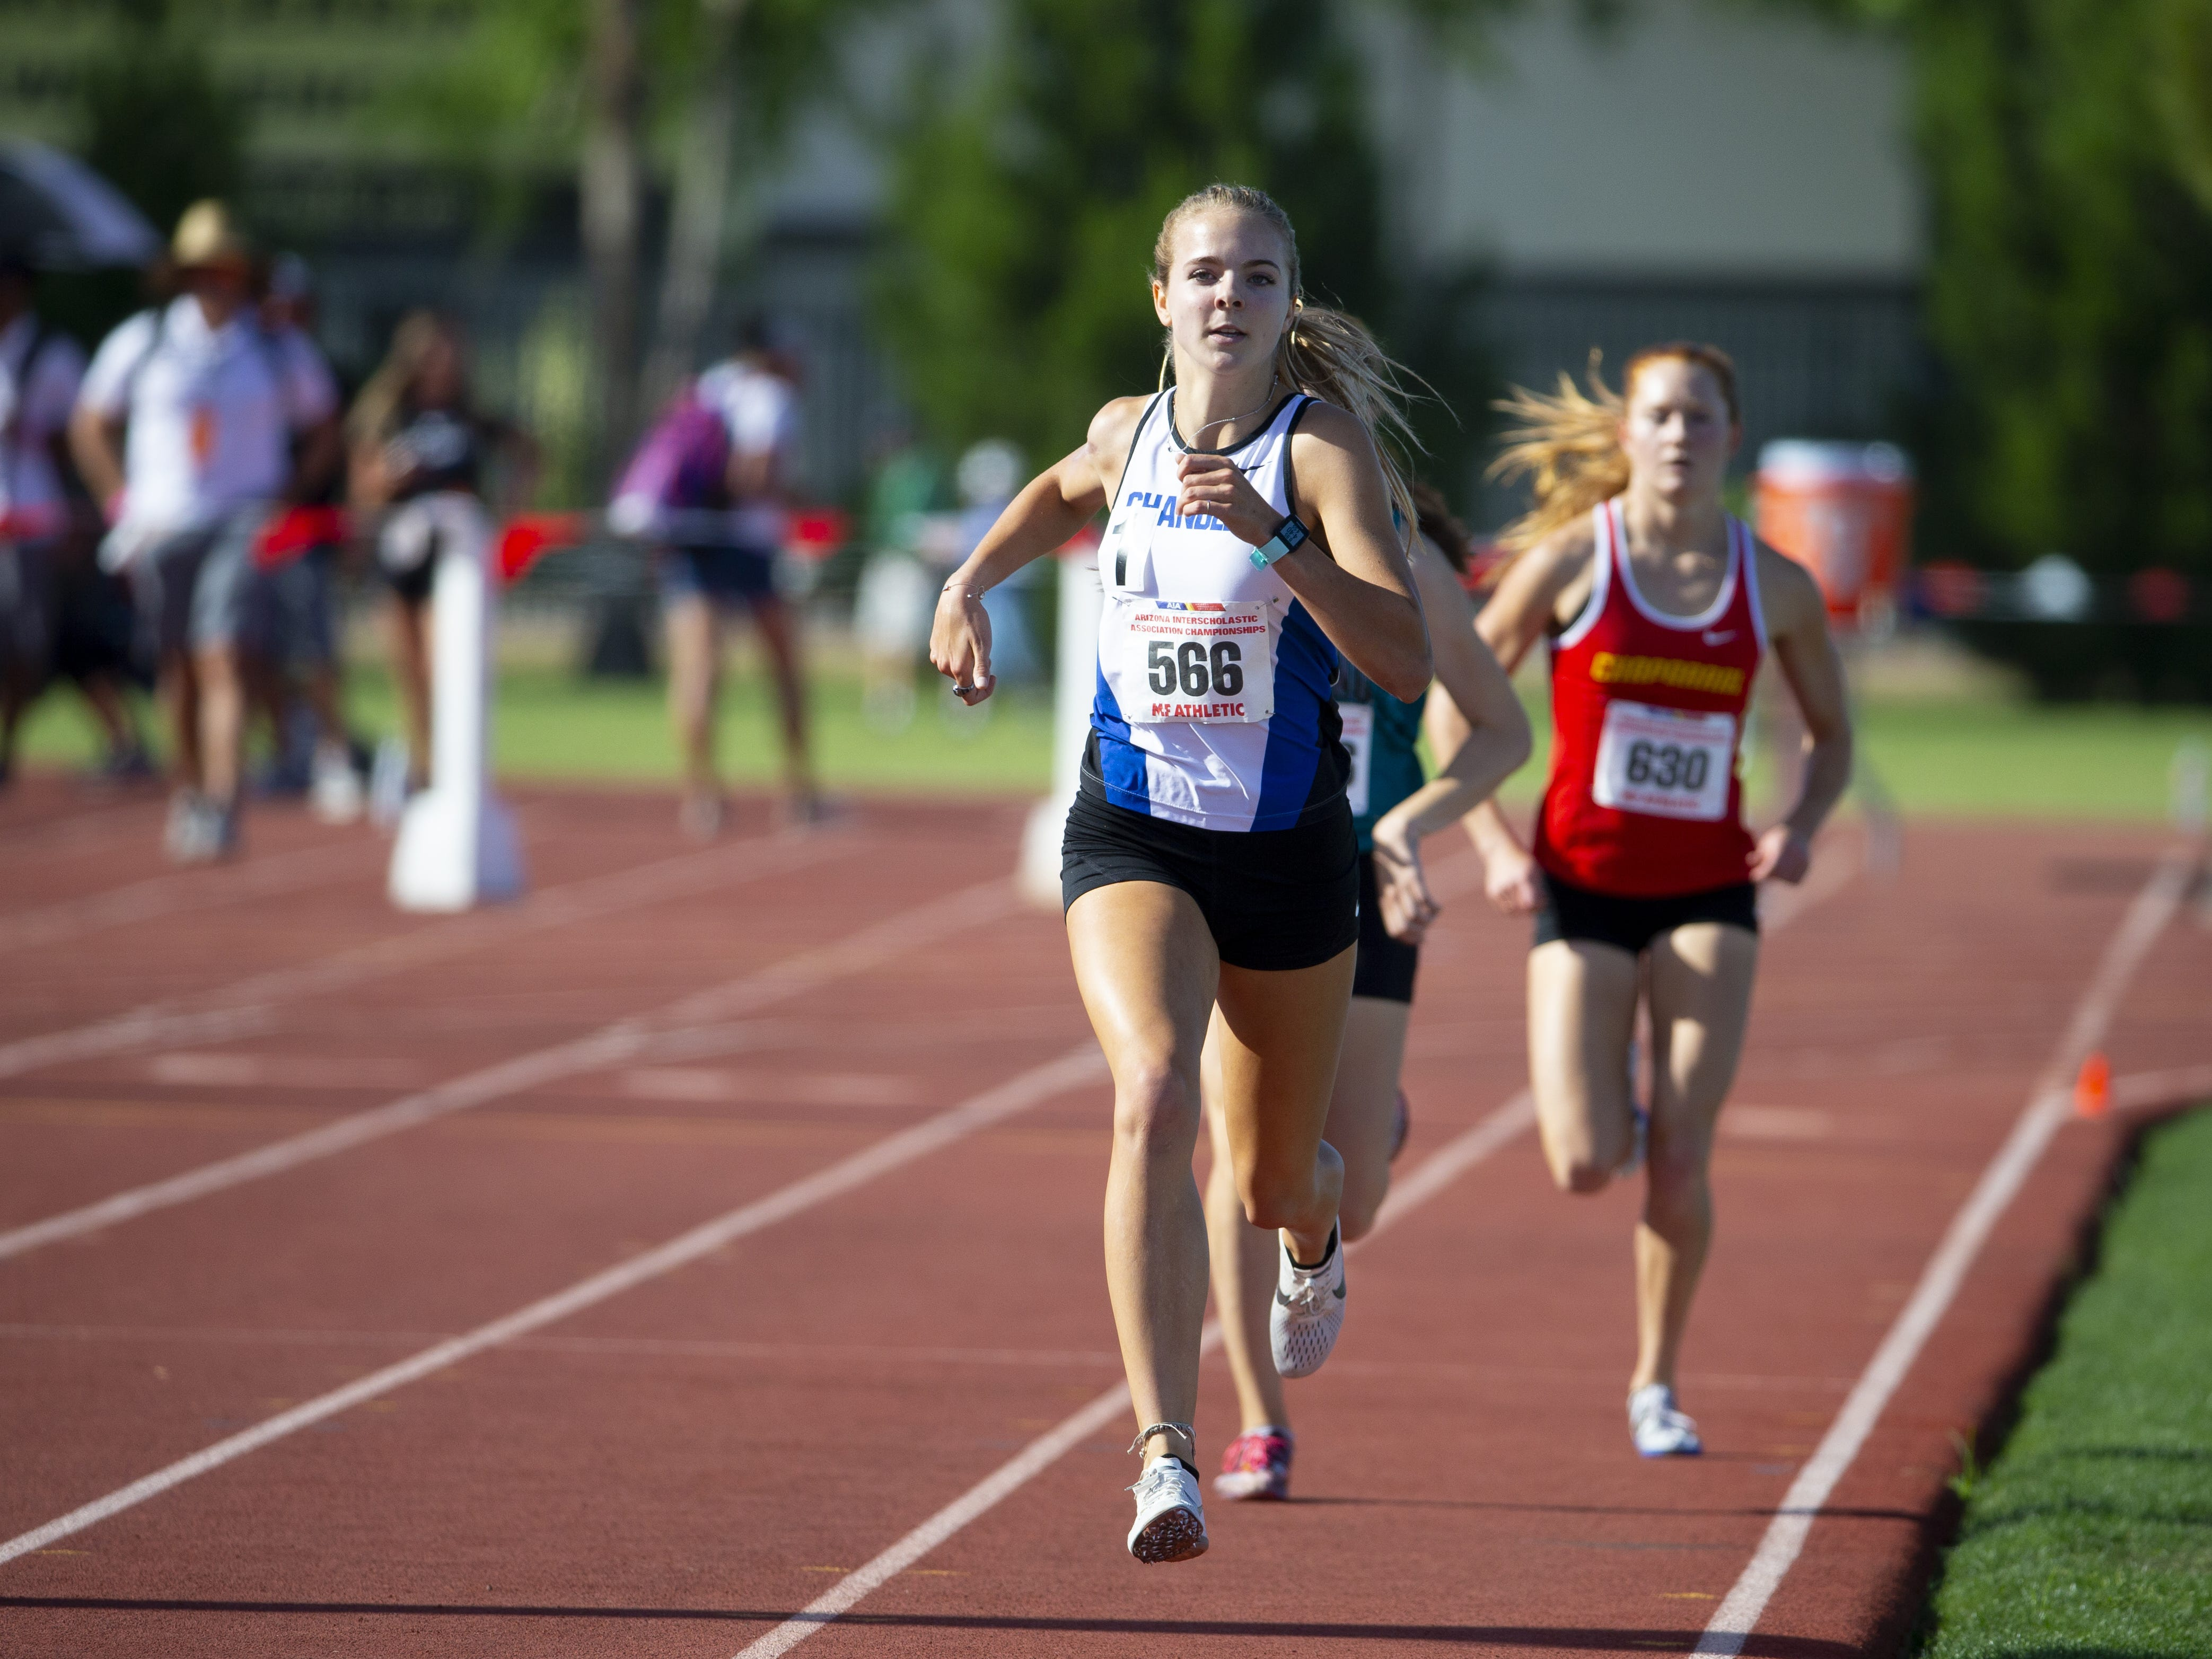 Chandler's Morgan Foster competes in the Girls 1600 meter run Div. I during the state track and field meet at Mesa Community college on May 1, 2019.